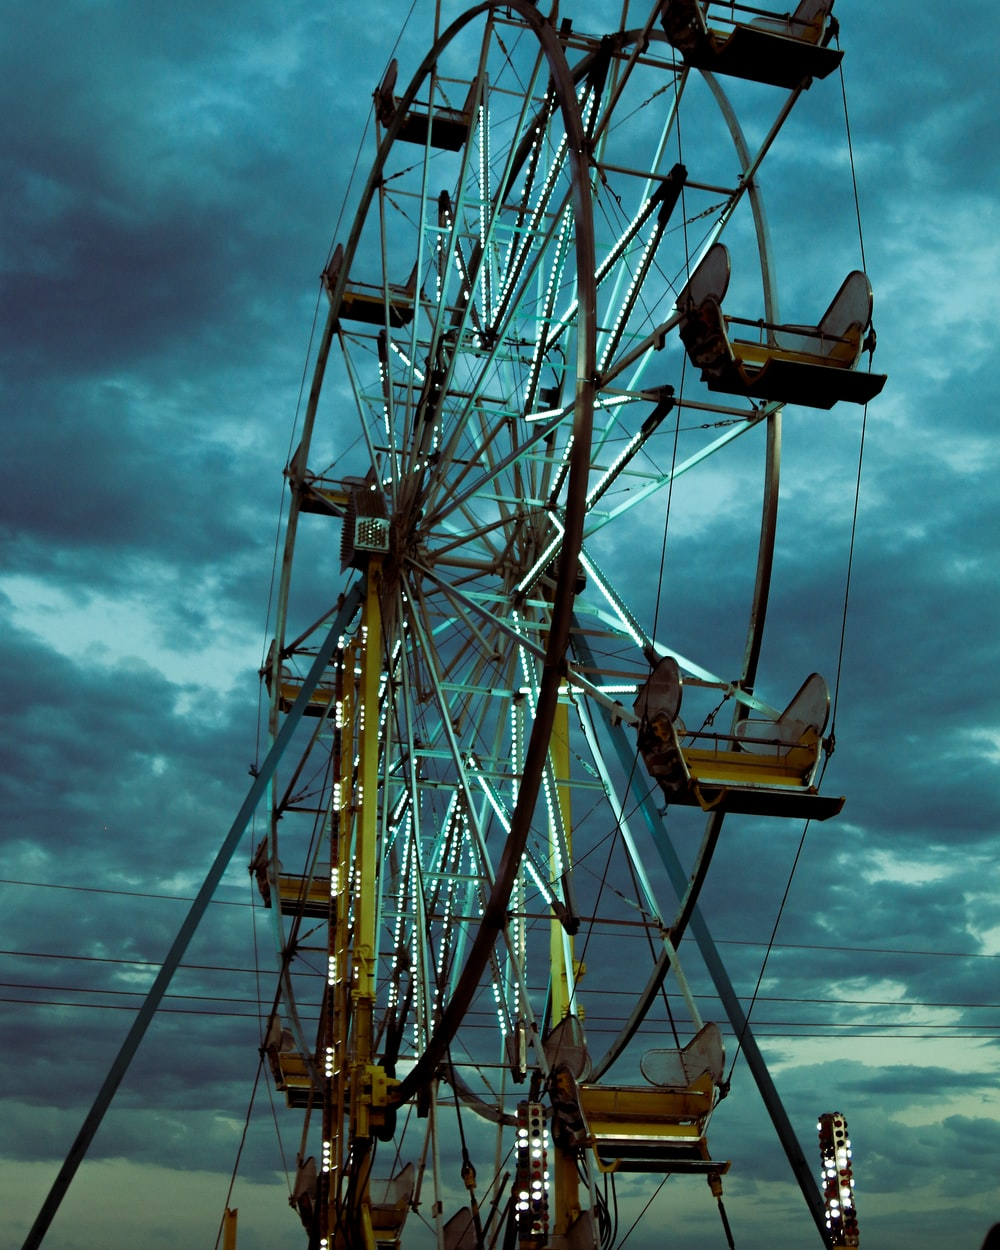 close up photography of ferris wheel under cloudy sky